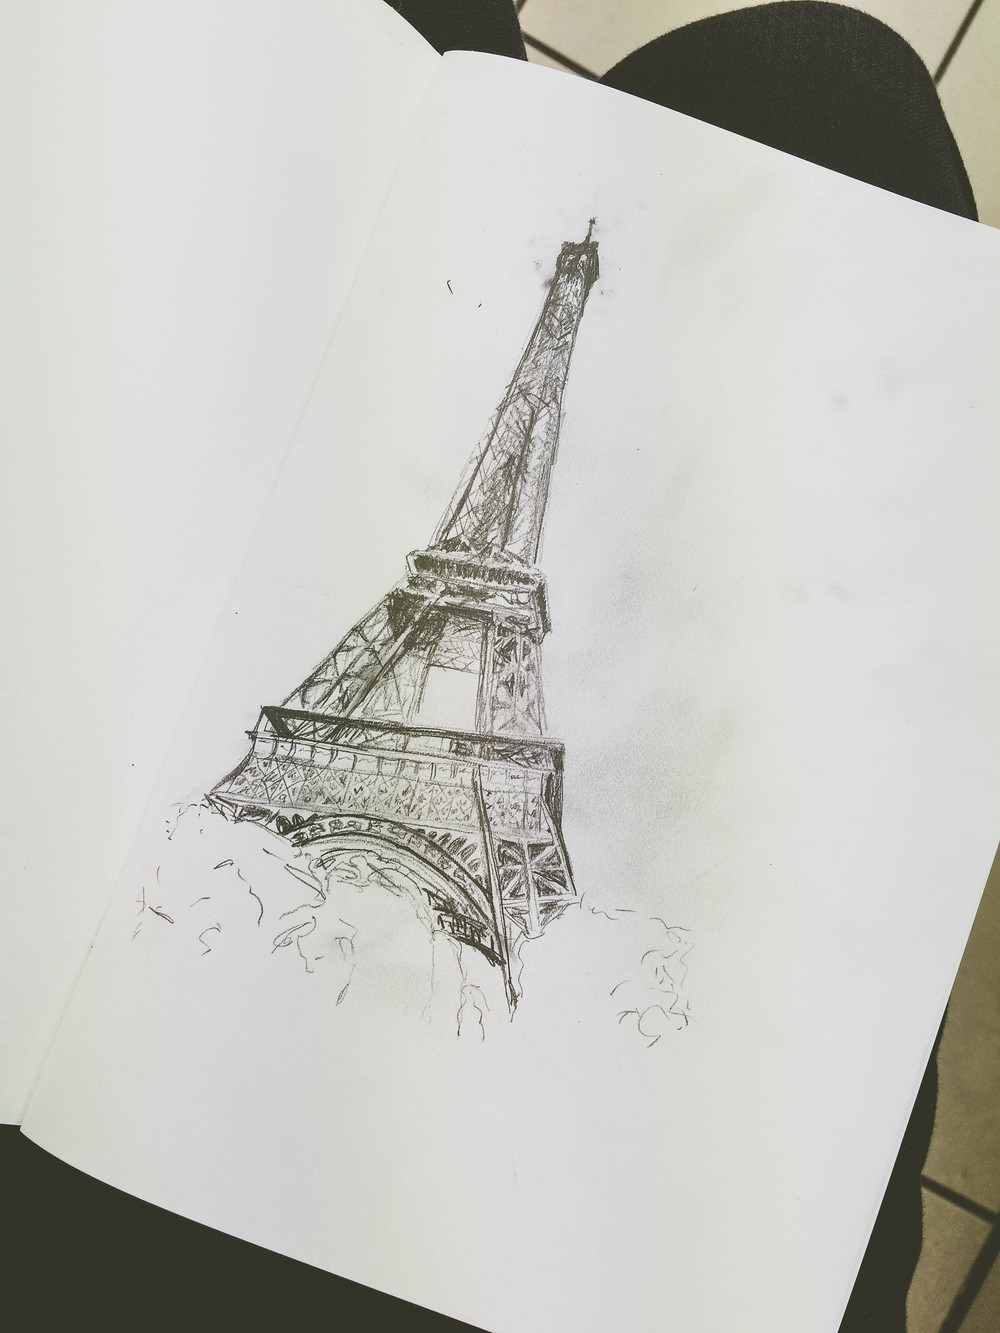 A sketch of the Eiffel Tower done while waiting at the laverie in Paris.